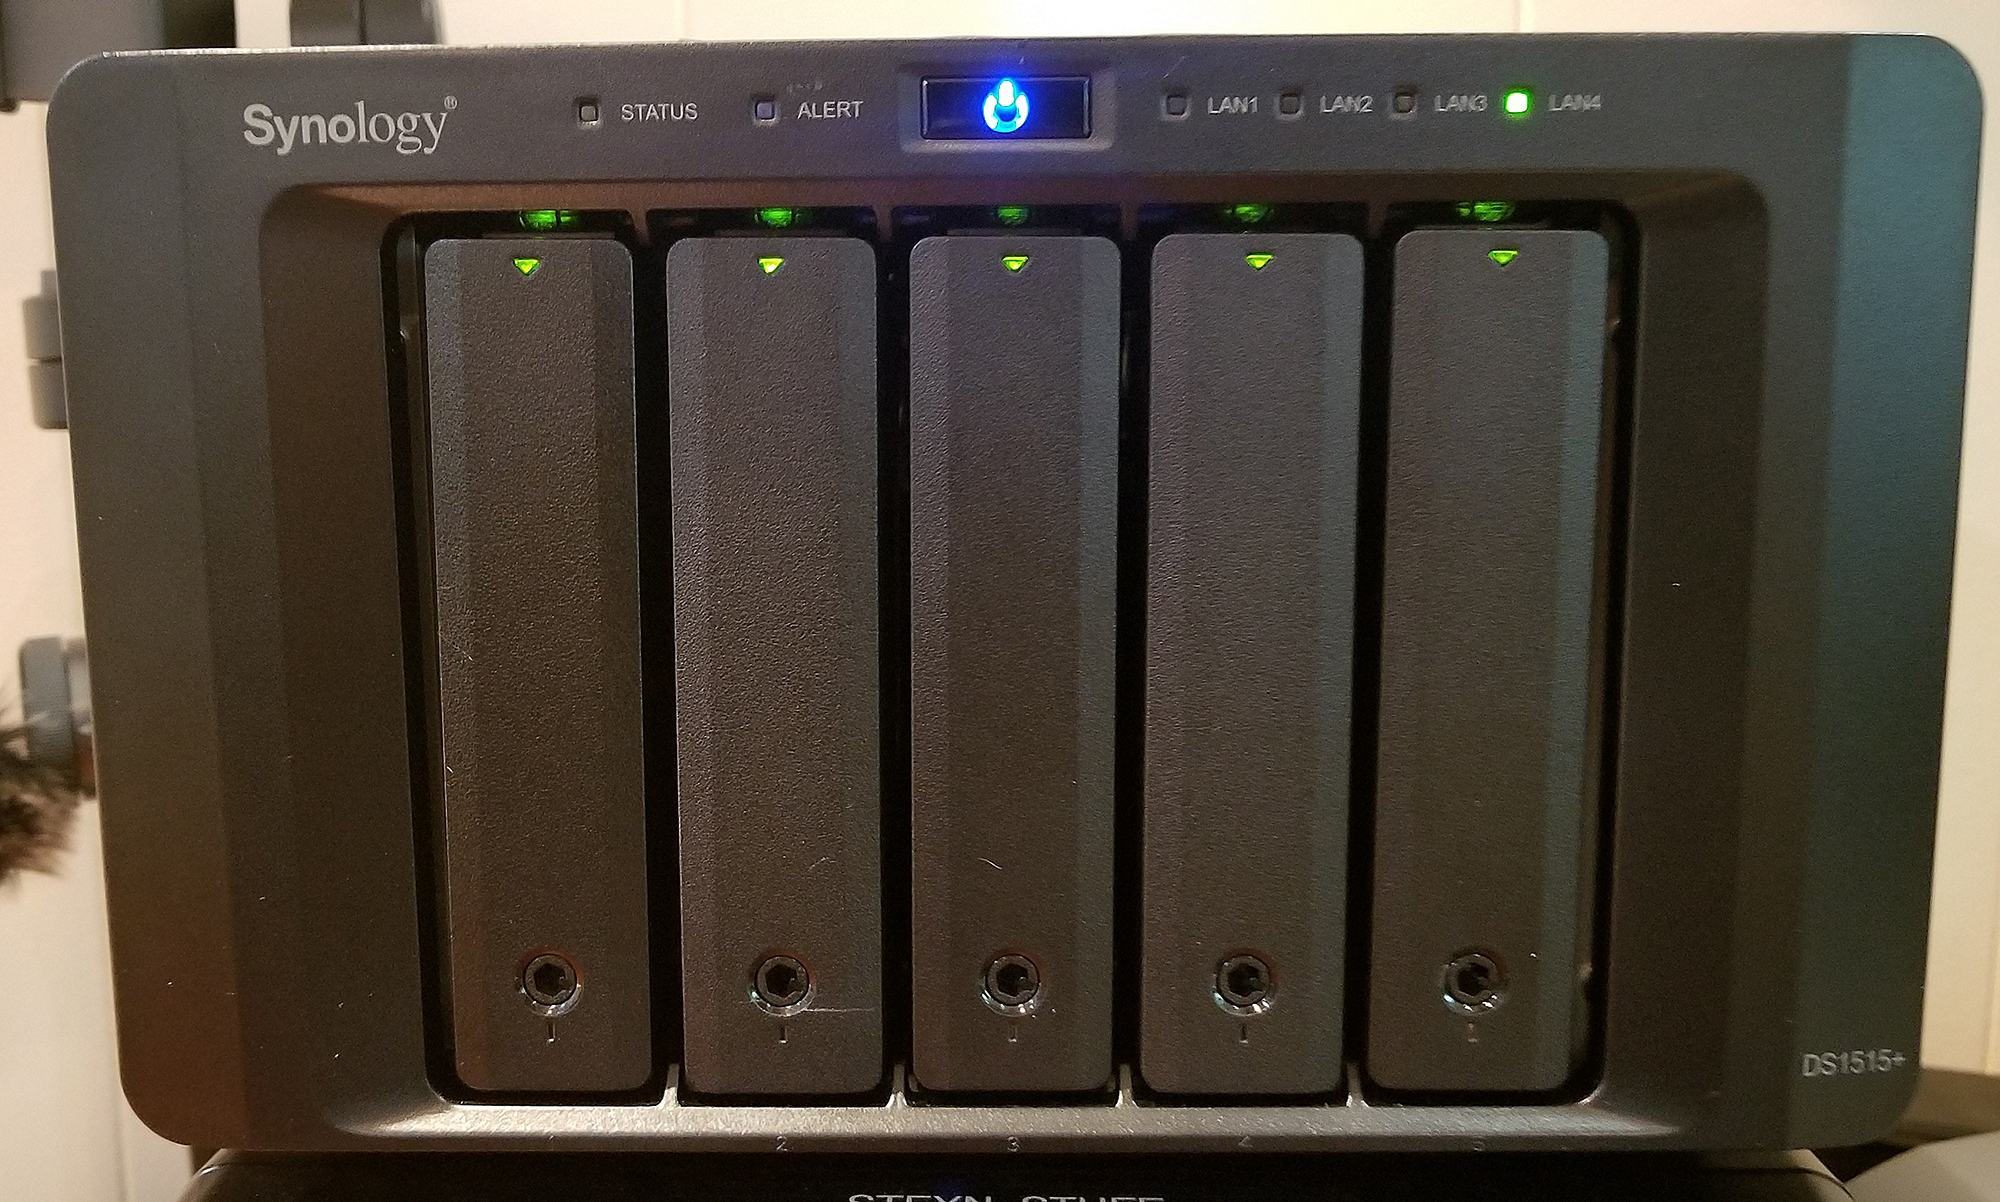 Synology DS1515+ 5-Bay drives with 5 x 8TB NAS Enterprise HDD's Striped in RAID 5